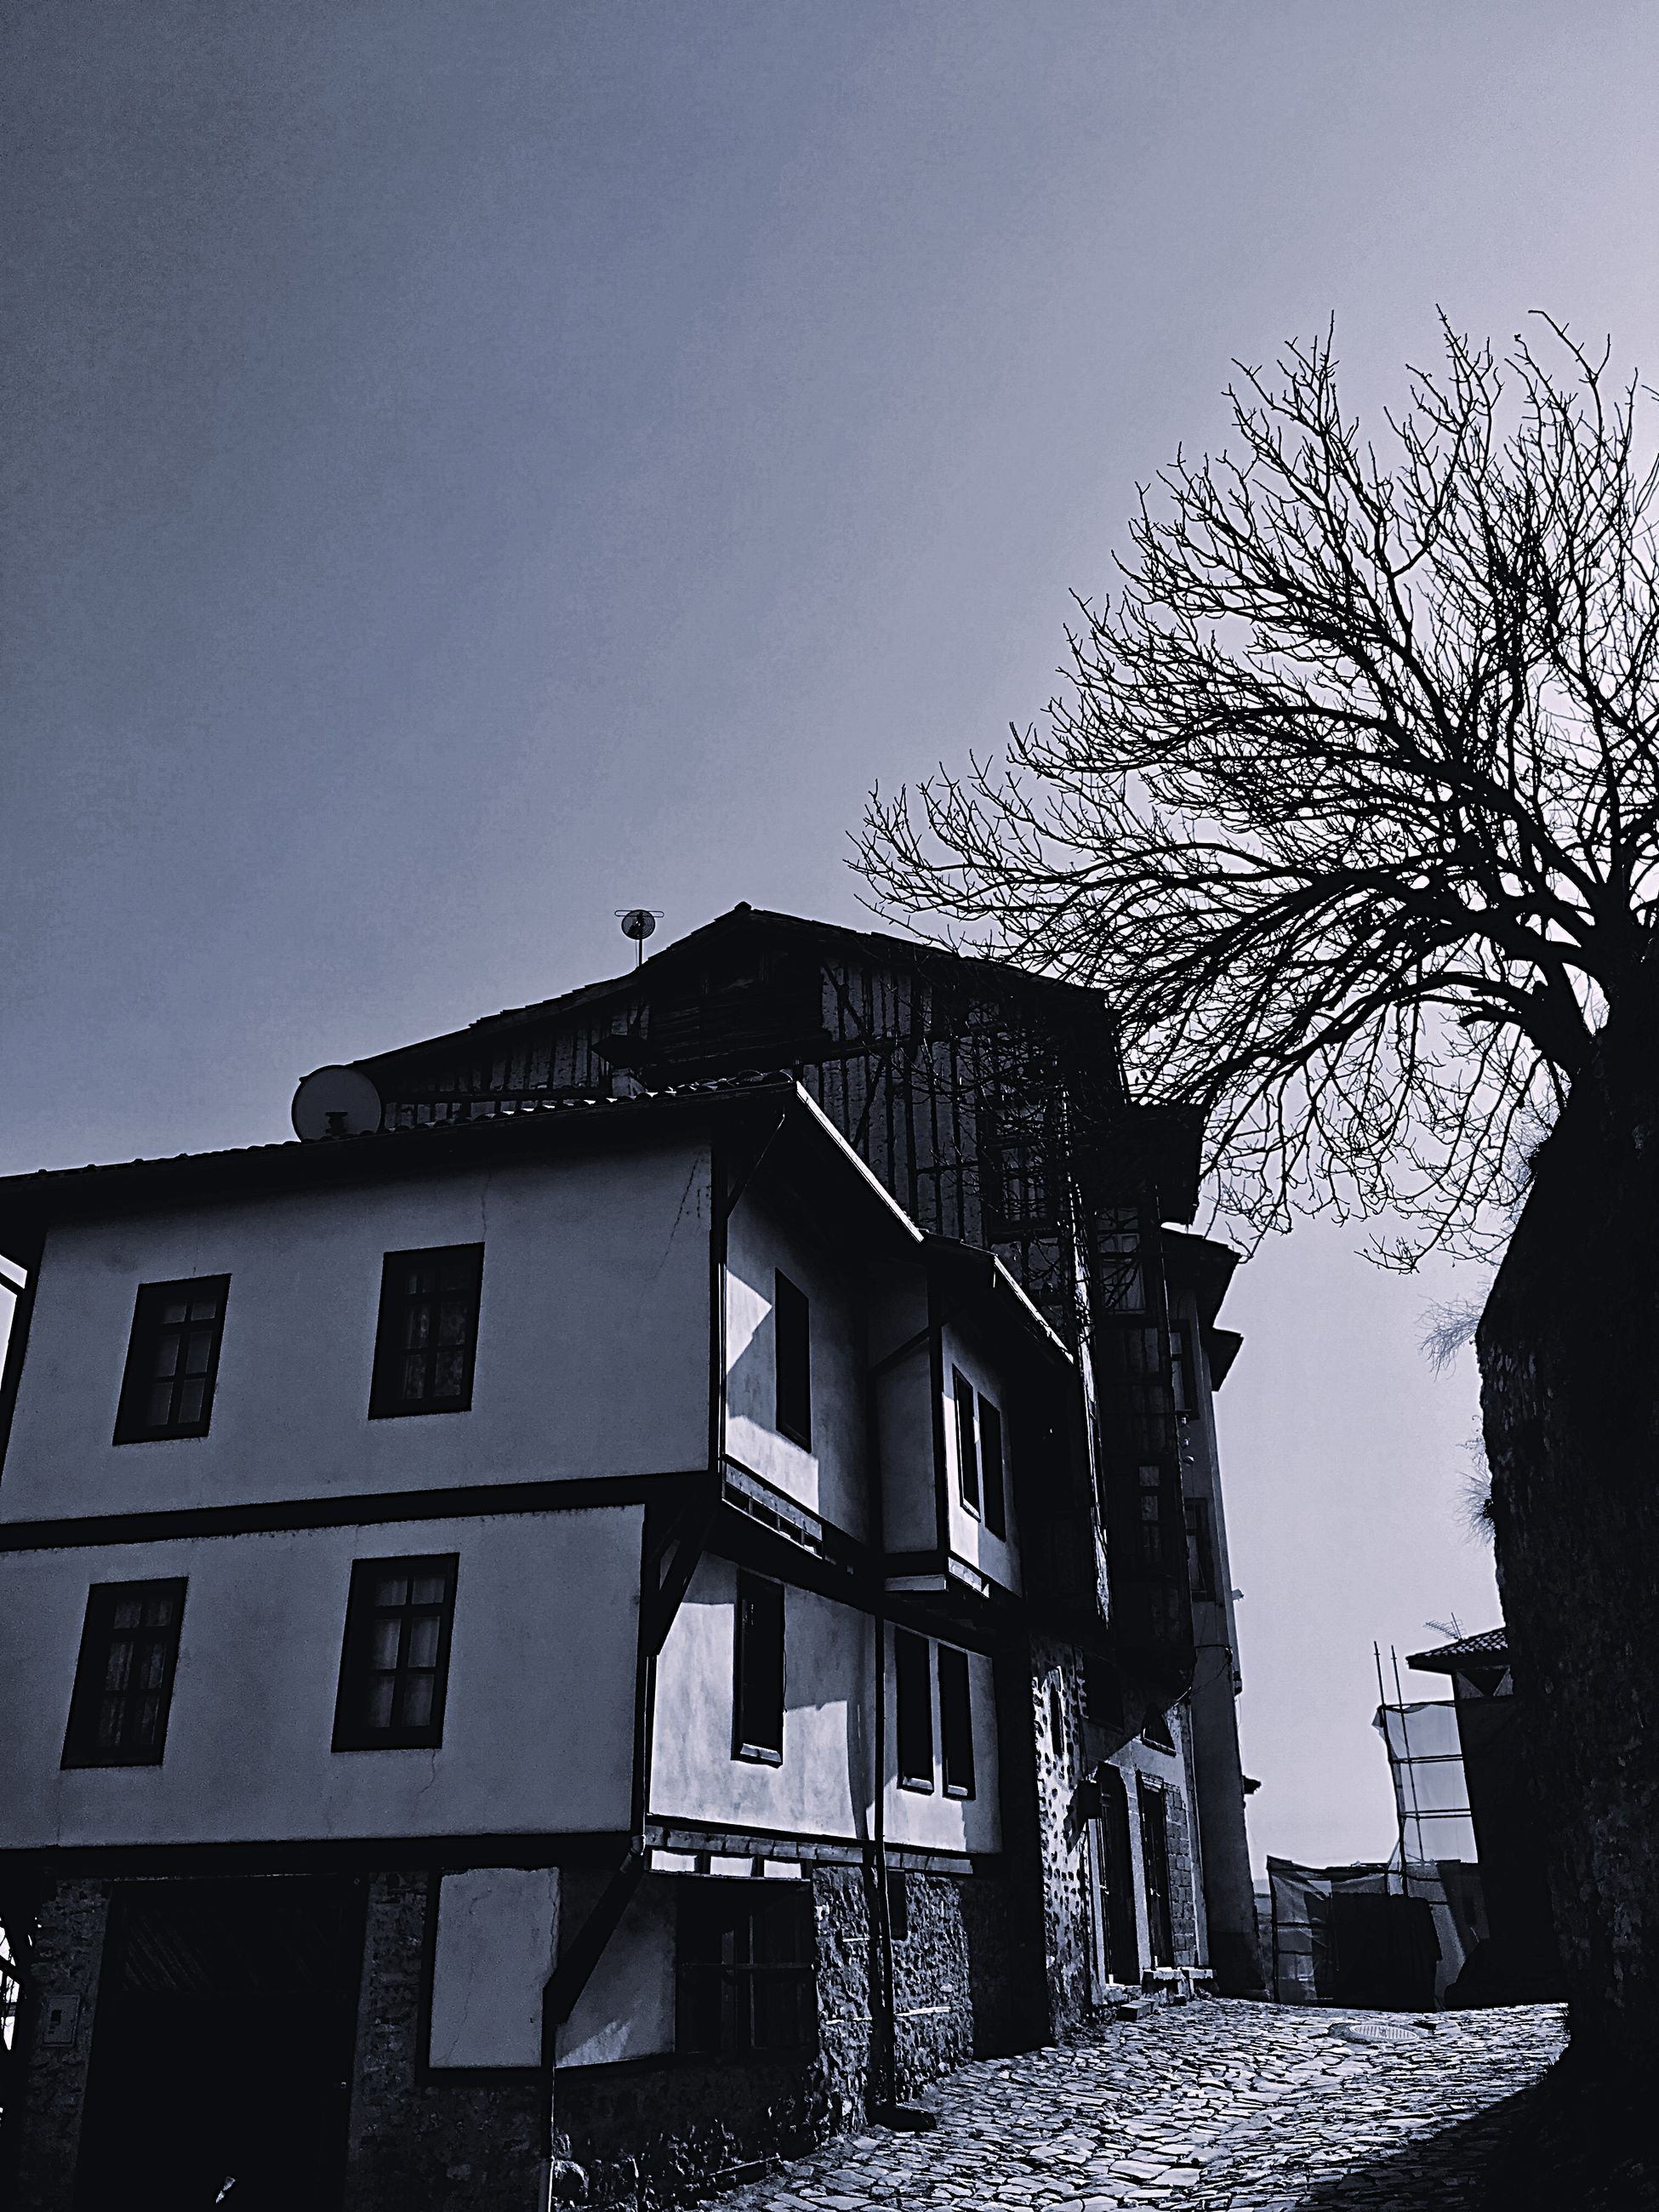 building exterior, architecture, built structure, sky, building, tree, nature, clear sky, low angle view, residential district, no people, window, plant, day, house, outdoors, city, bare tree, copy space, old